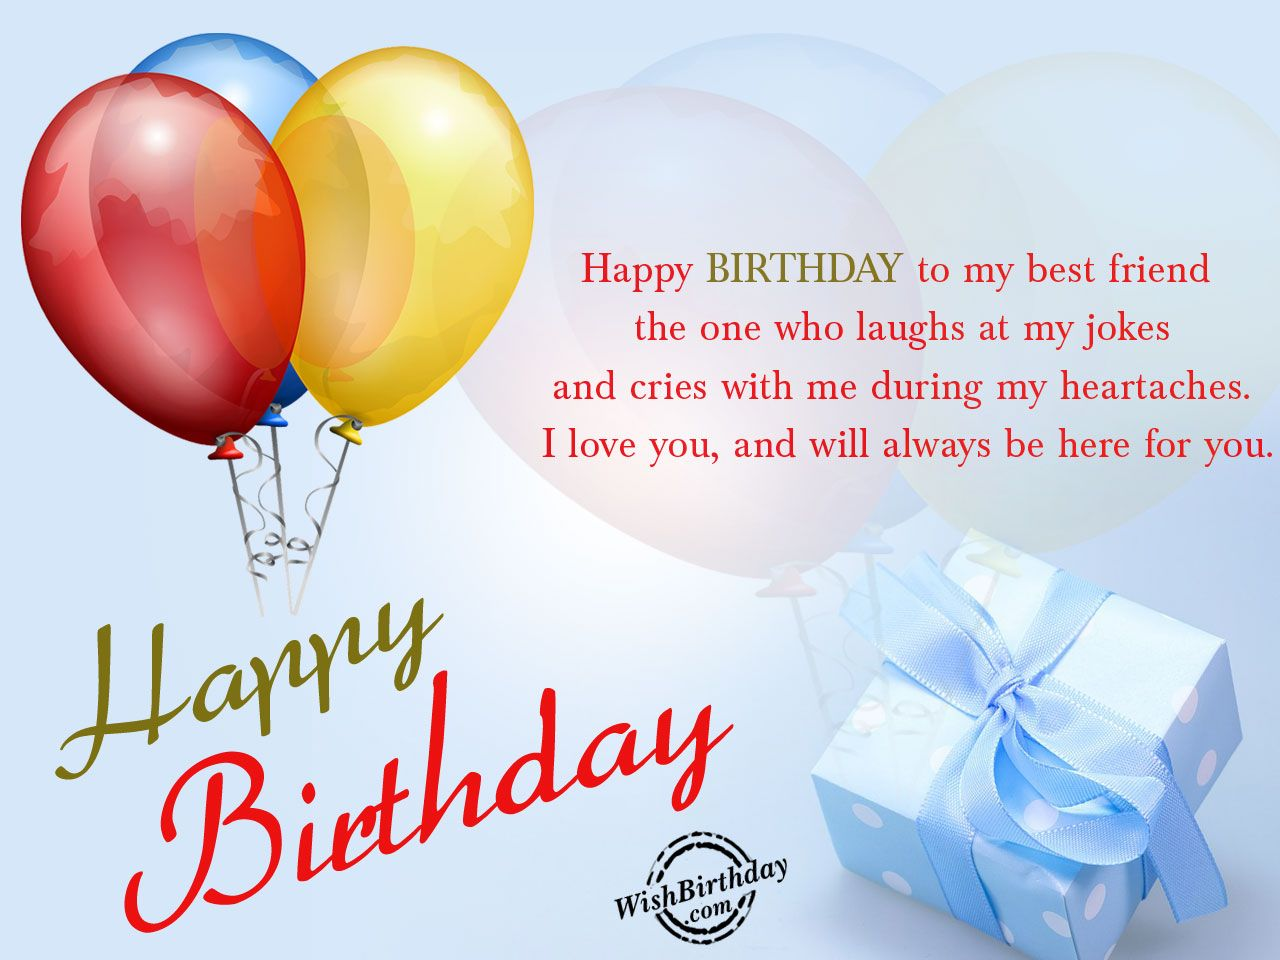 Happy Birthday Messages For Him Friend My Best